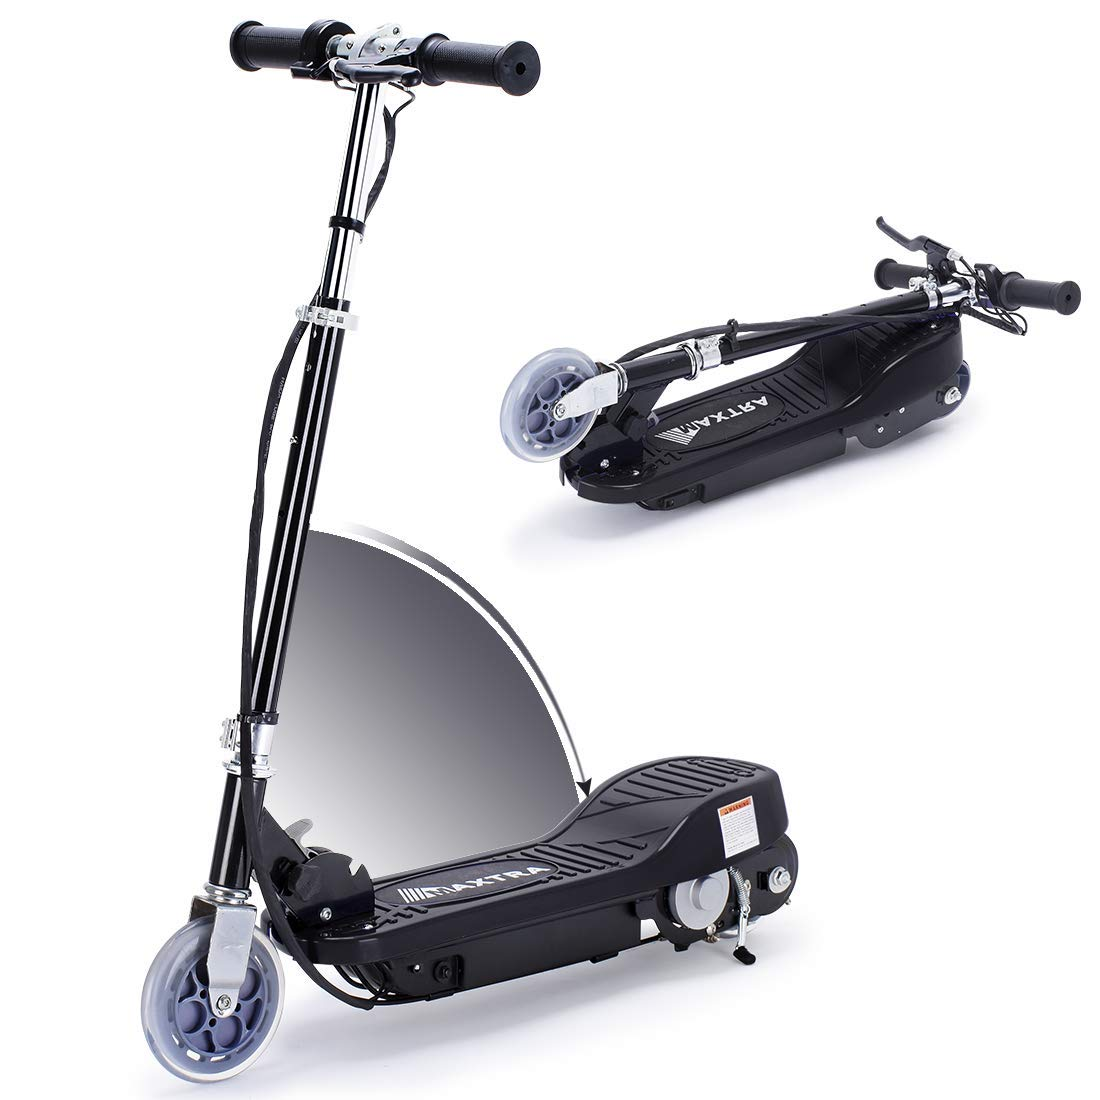 Overwhelming Upgrade E100 Adjustable Handlebar Height Folding Electric Scooter for Kids, 160LBS Max Weight Capacity Motorized Scooters, up to 10mph by Overwhelming